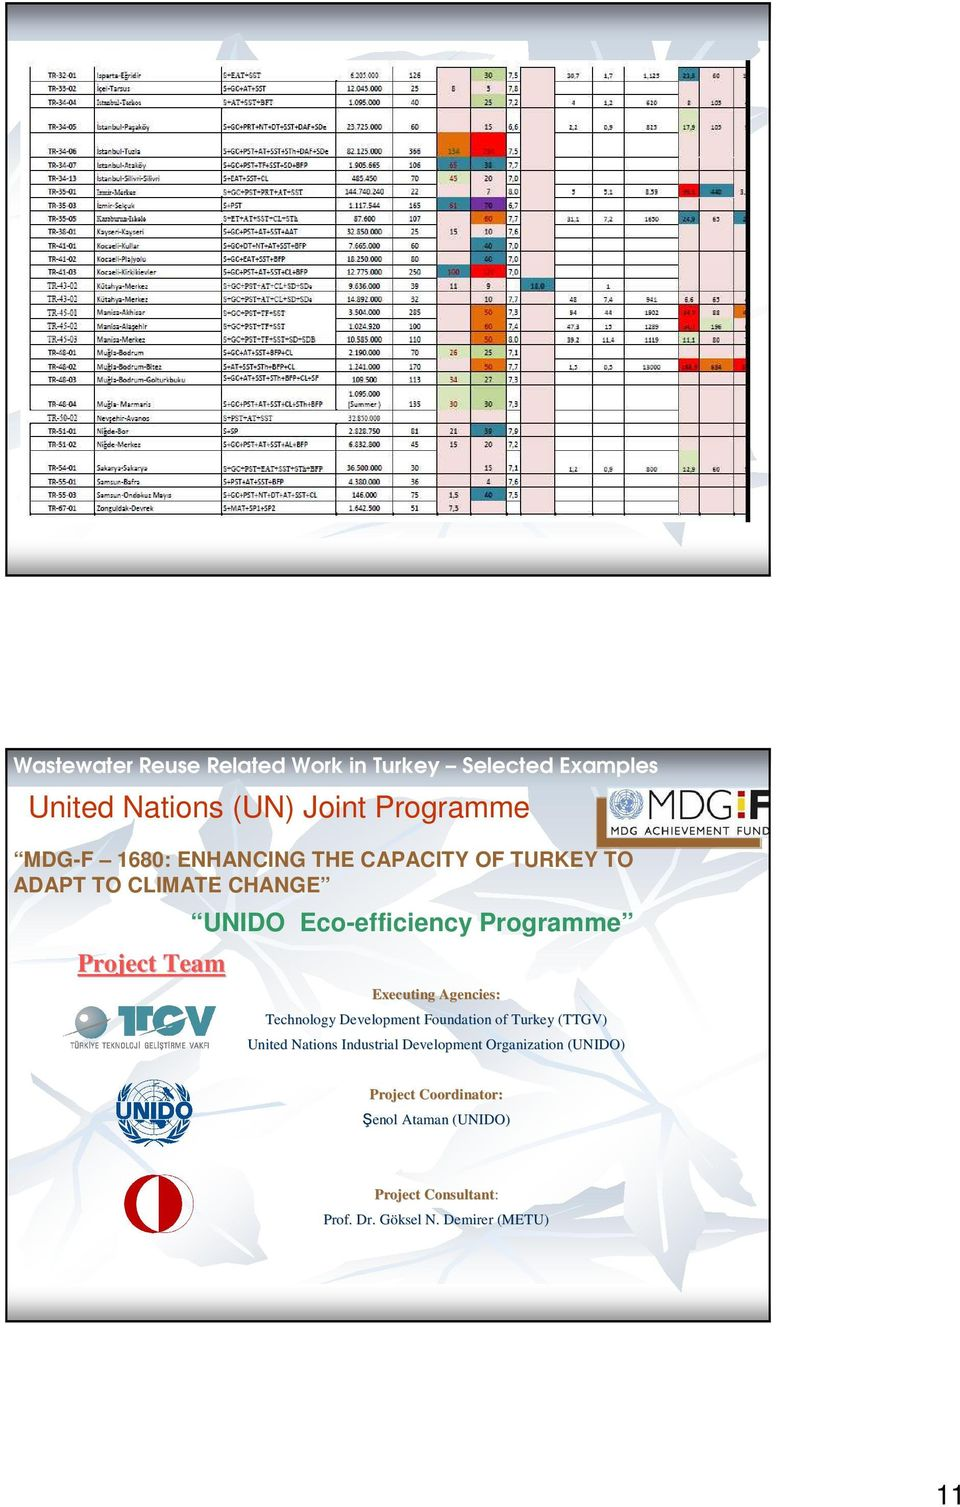 Executing Agencies: Technology Development Foundation of Turkey (TTGV) United Nations Industrial Development